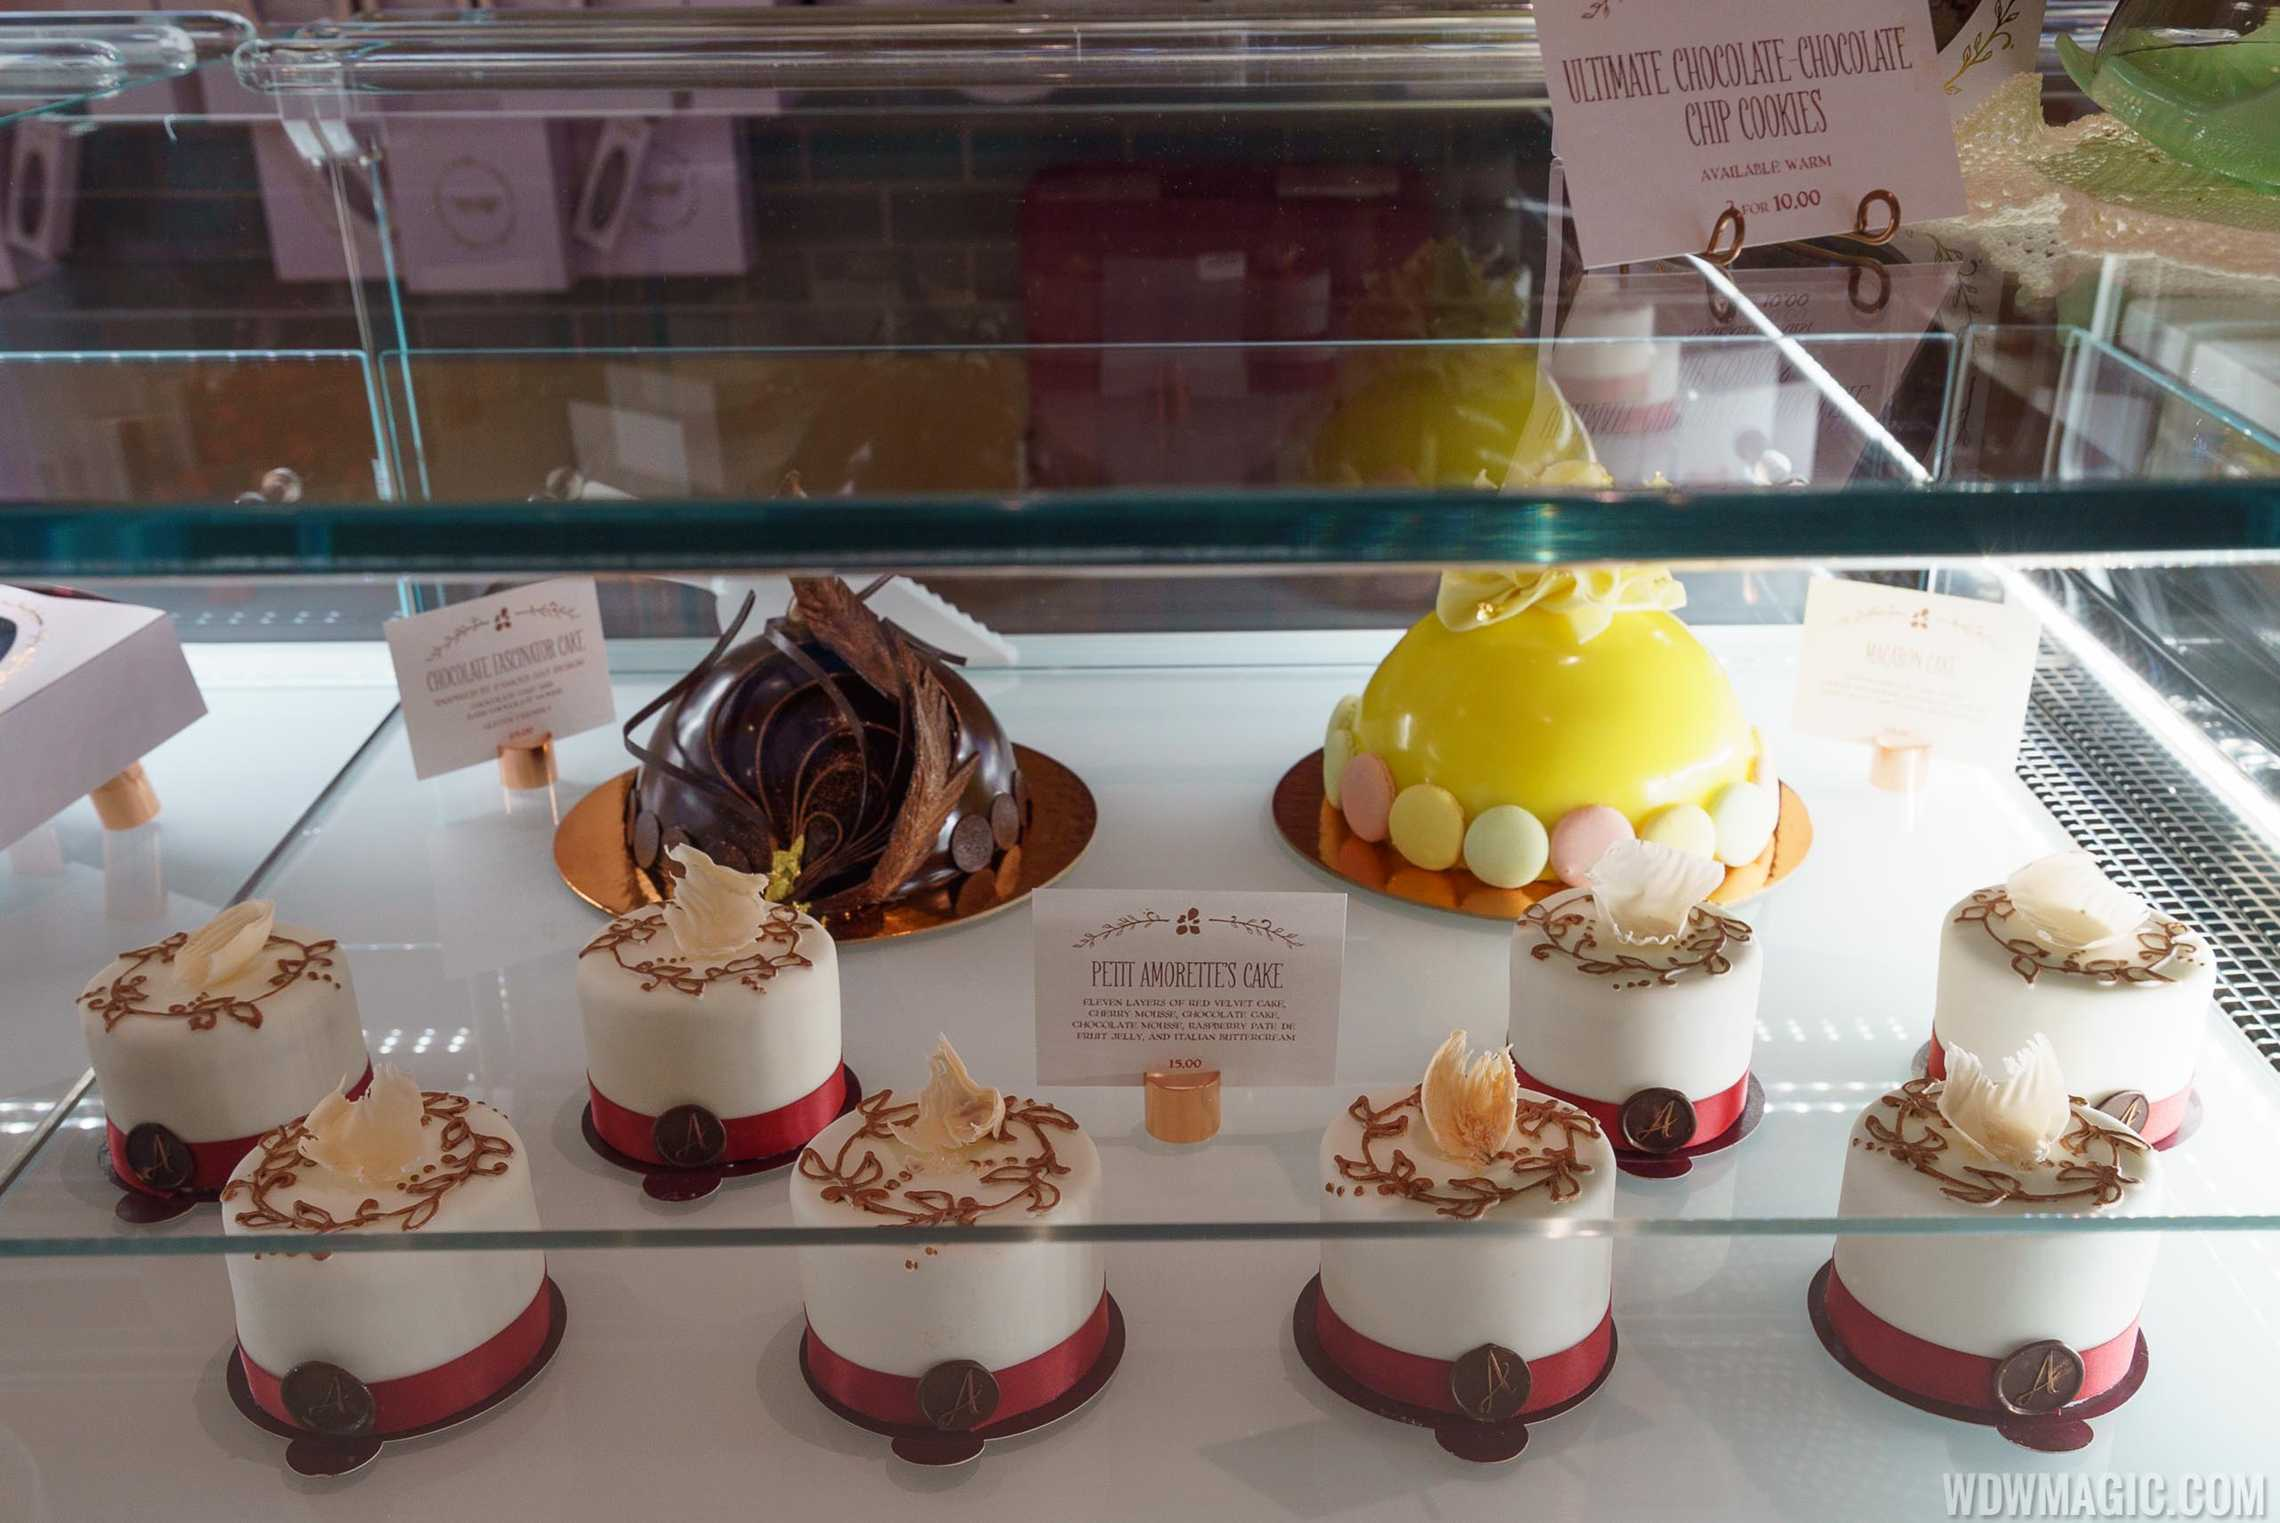 Amorette's Patisserie - Amorette's Cake display